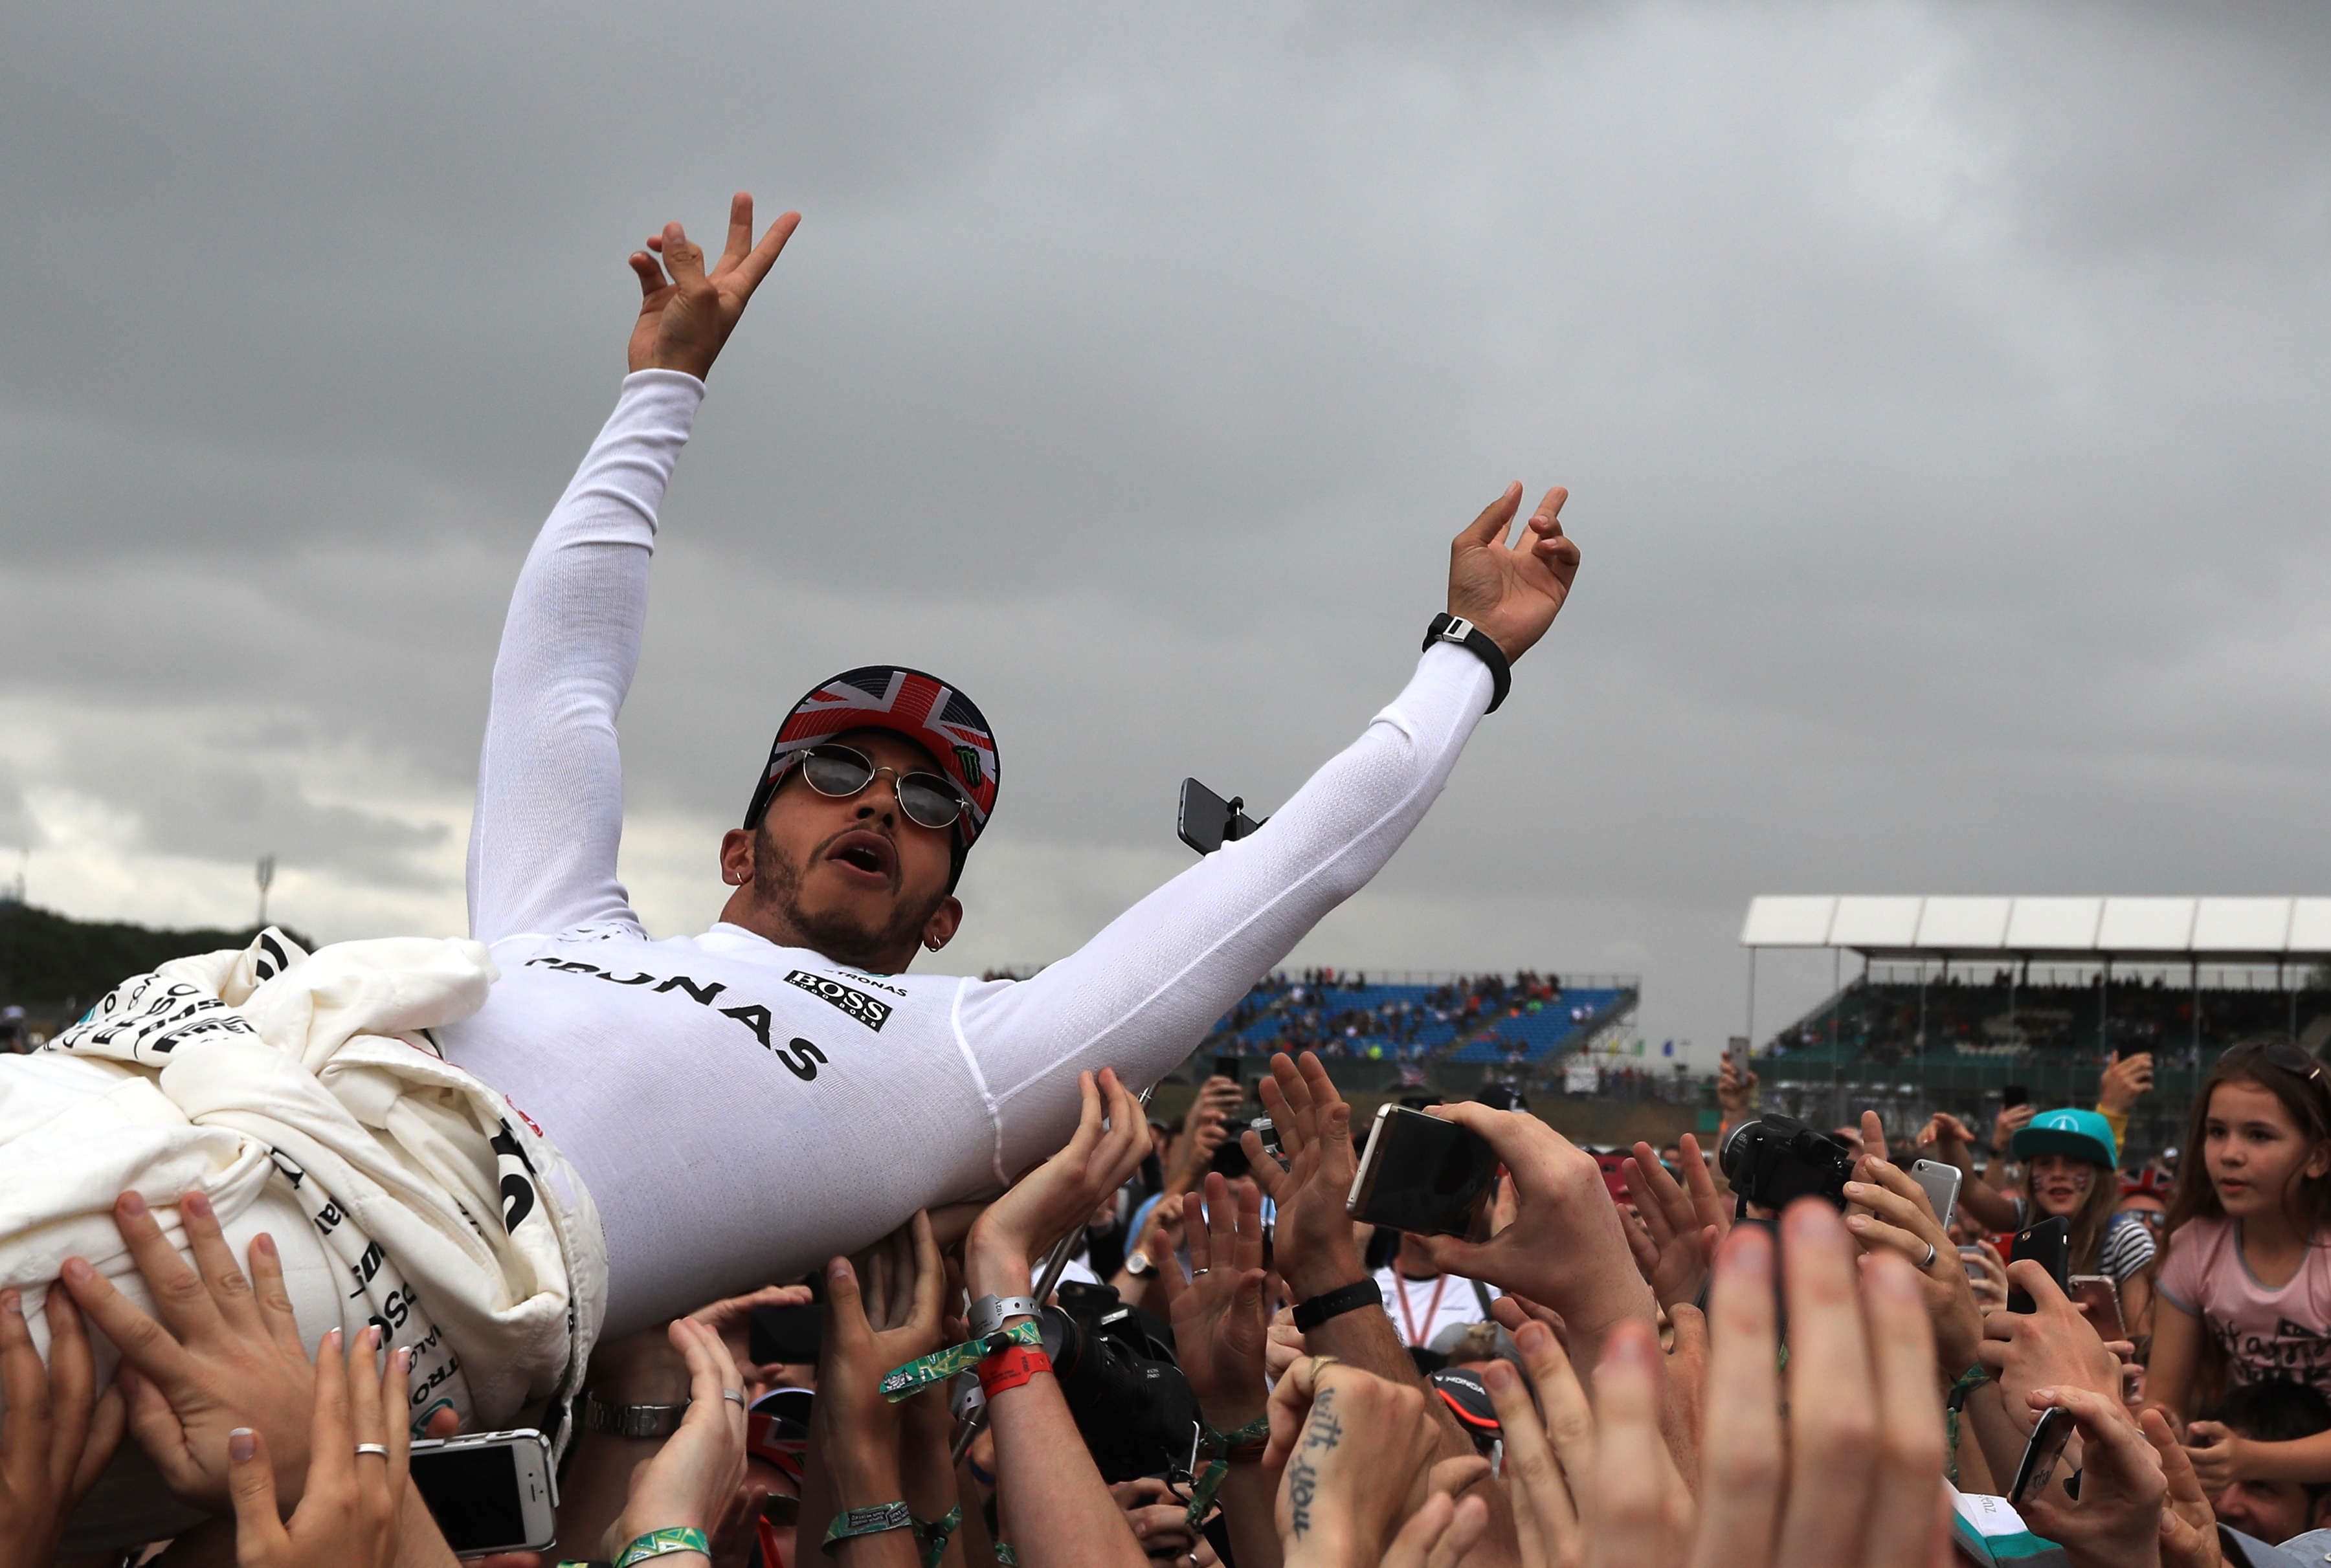 Mercedes' Lewis Hamilton celebrates by crowdsurfing with fans after winning the 2017 British Grand Prix at Silverstone Circuit, Towcester.